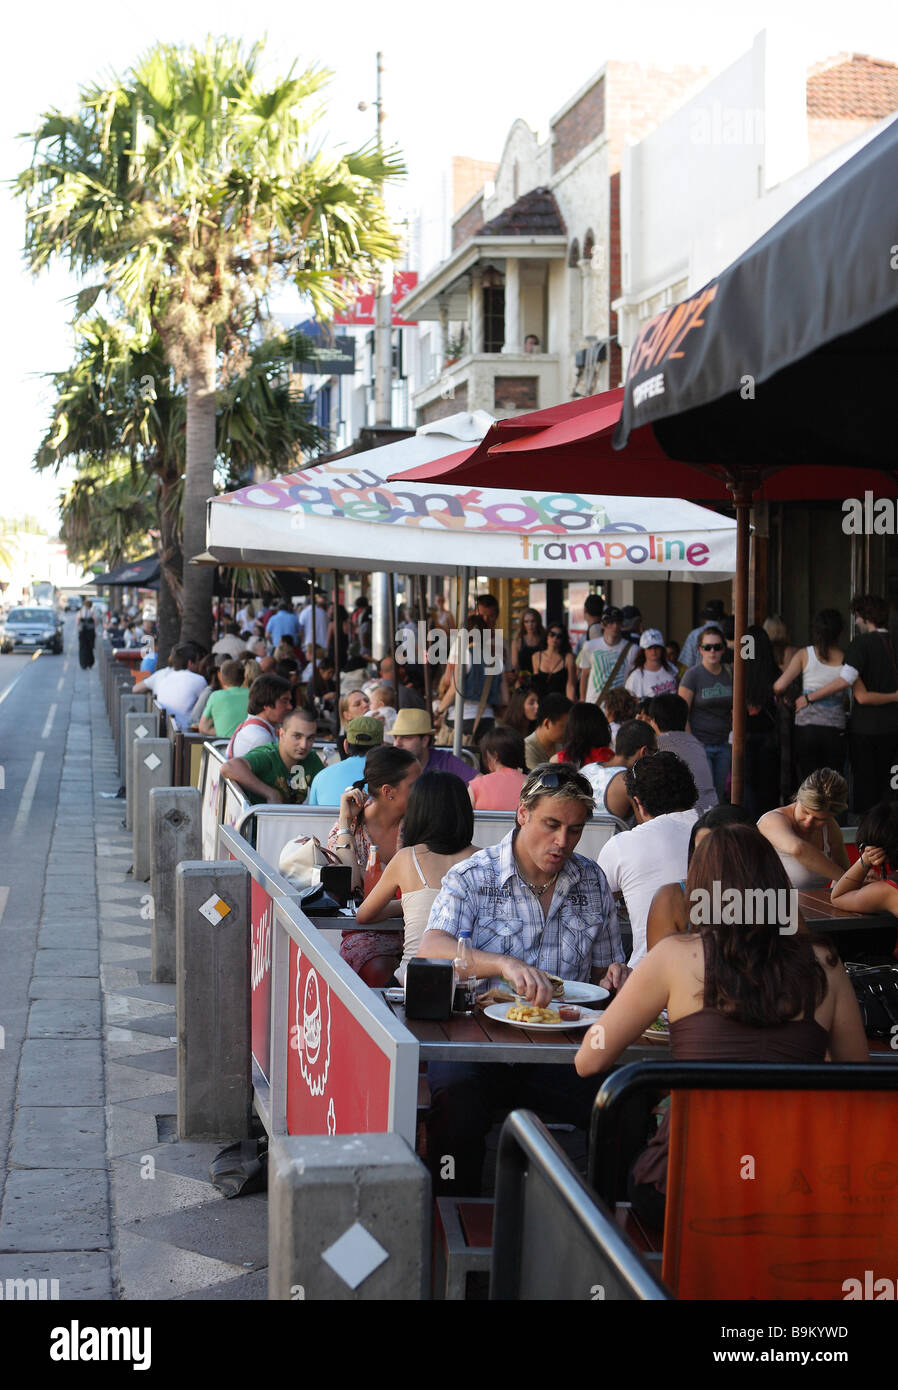 Street cafe in Acland Street in St.Kilda near Melbourne,Victoria,Australia Stock Photo